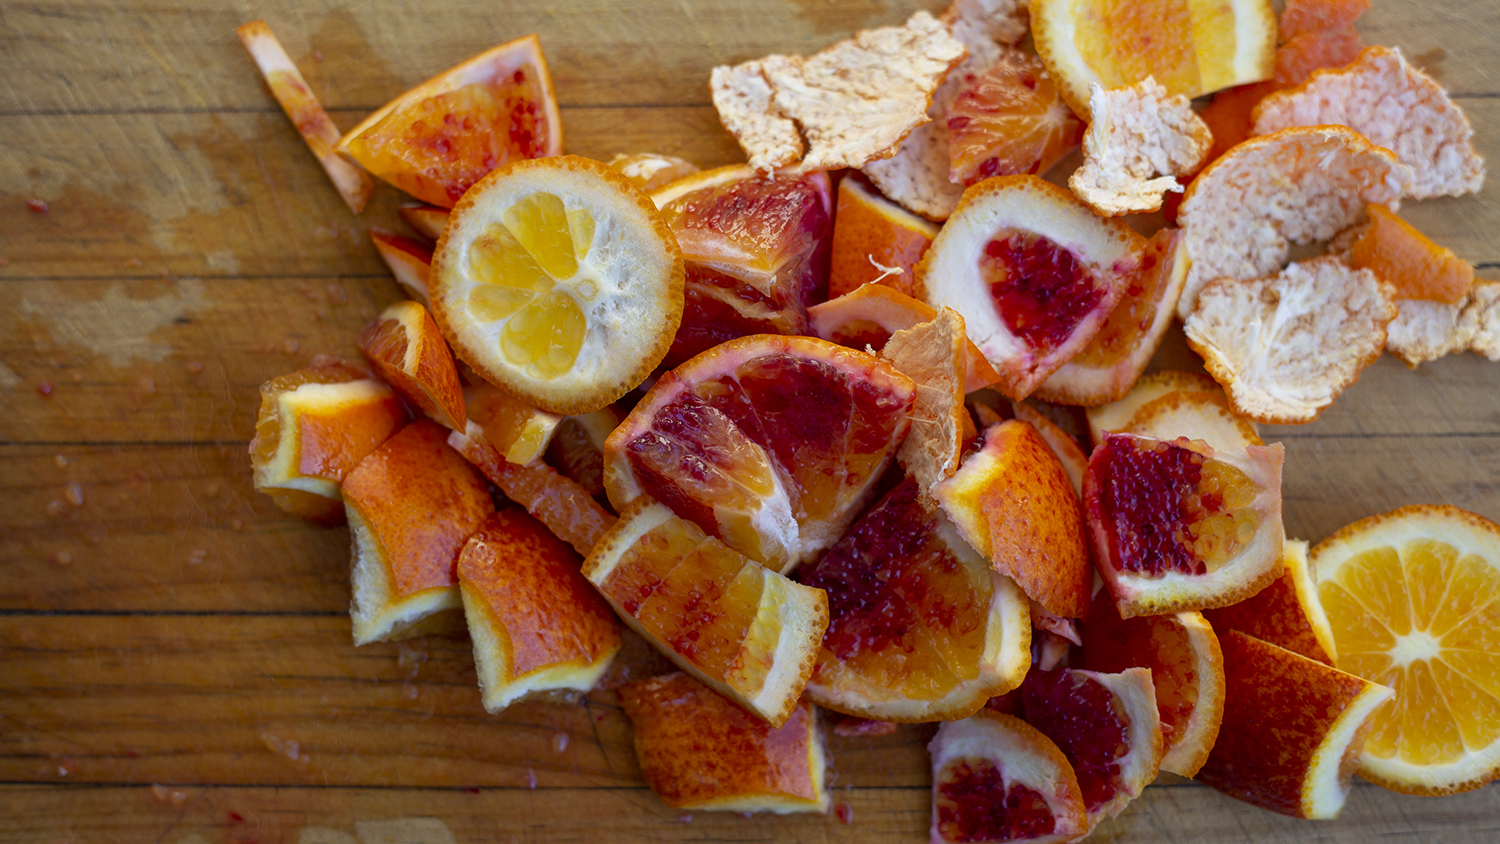 5 Ways to Spring Clean Your Home With Fruit and Vegetable Scraps